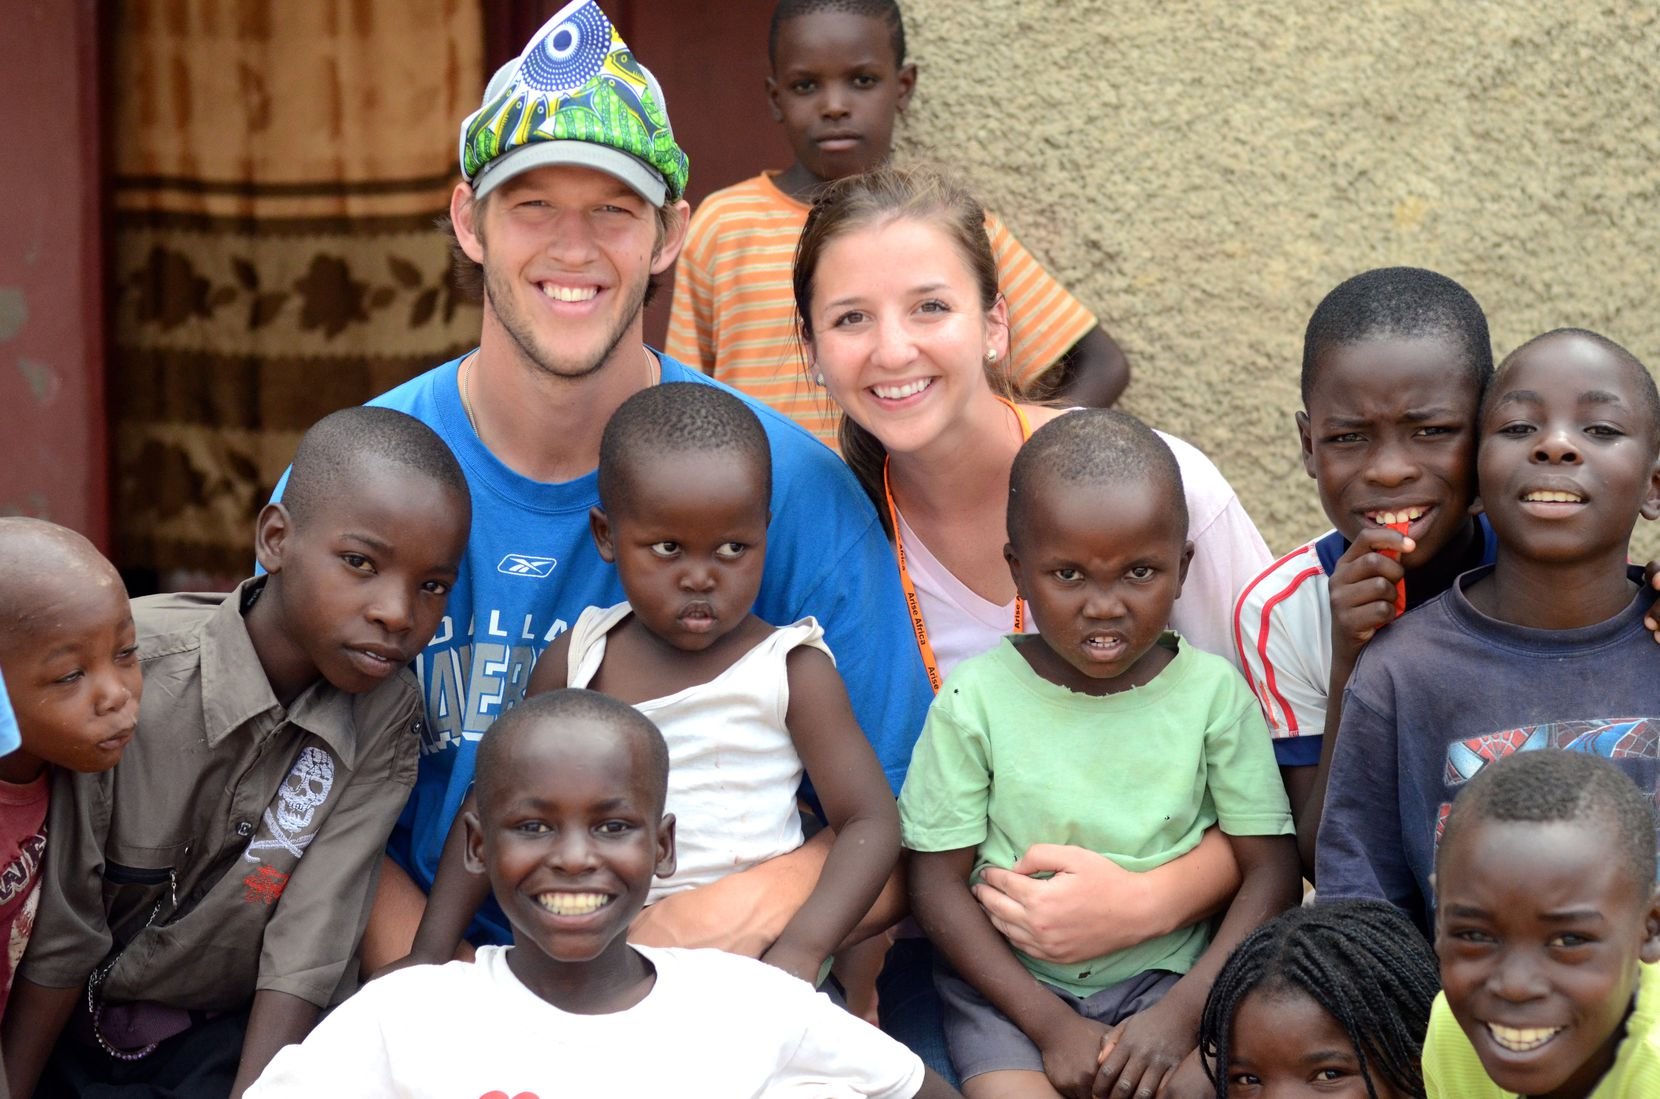 Clayton and Ellen Kershaw visit with children on their second visit to Lusaka, Zambia, in 2012.